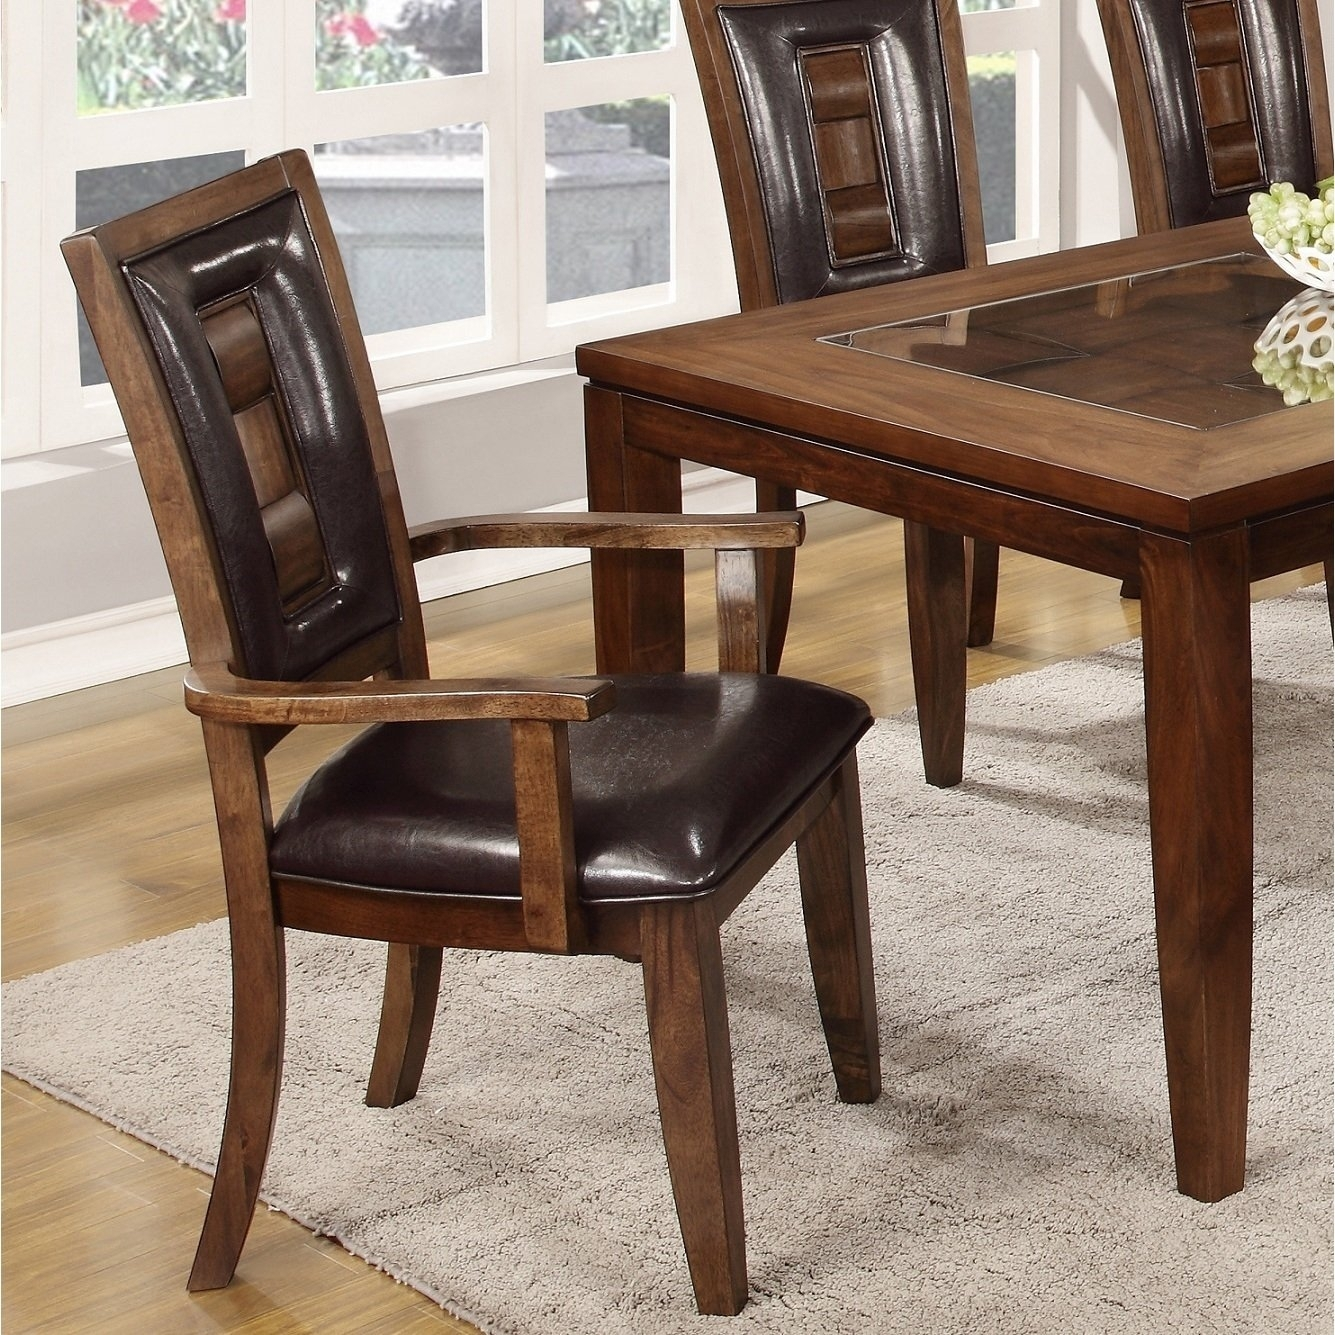 Shop Calais 7 Piece Parquet Finish Solid Wood Dining Table With 6 Intended For Newest Parquet 7 Piece Dining Sets (View 4 of 20)